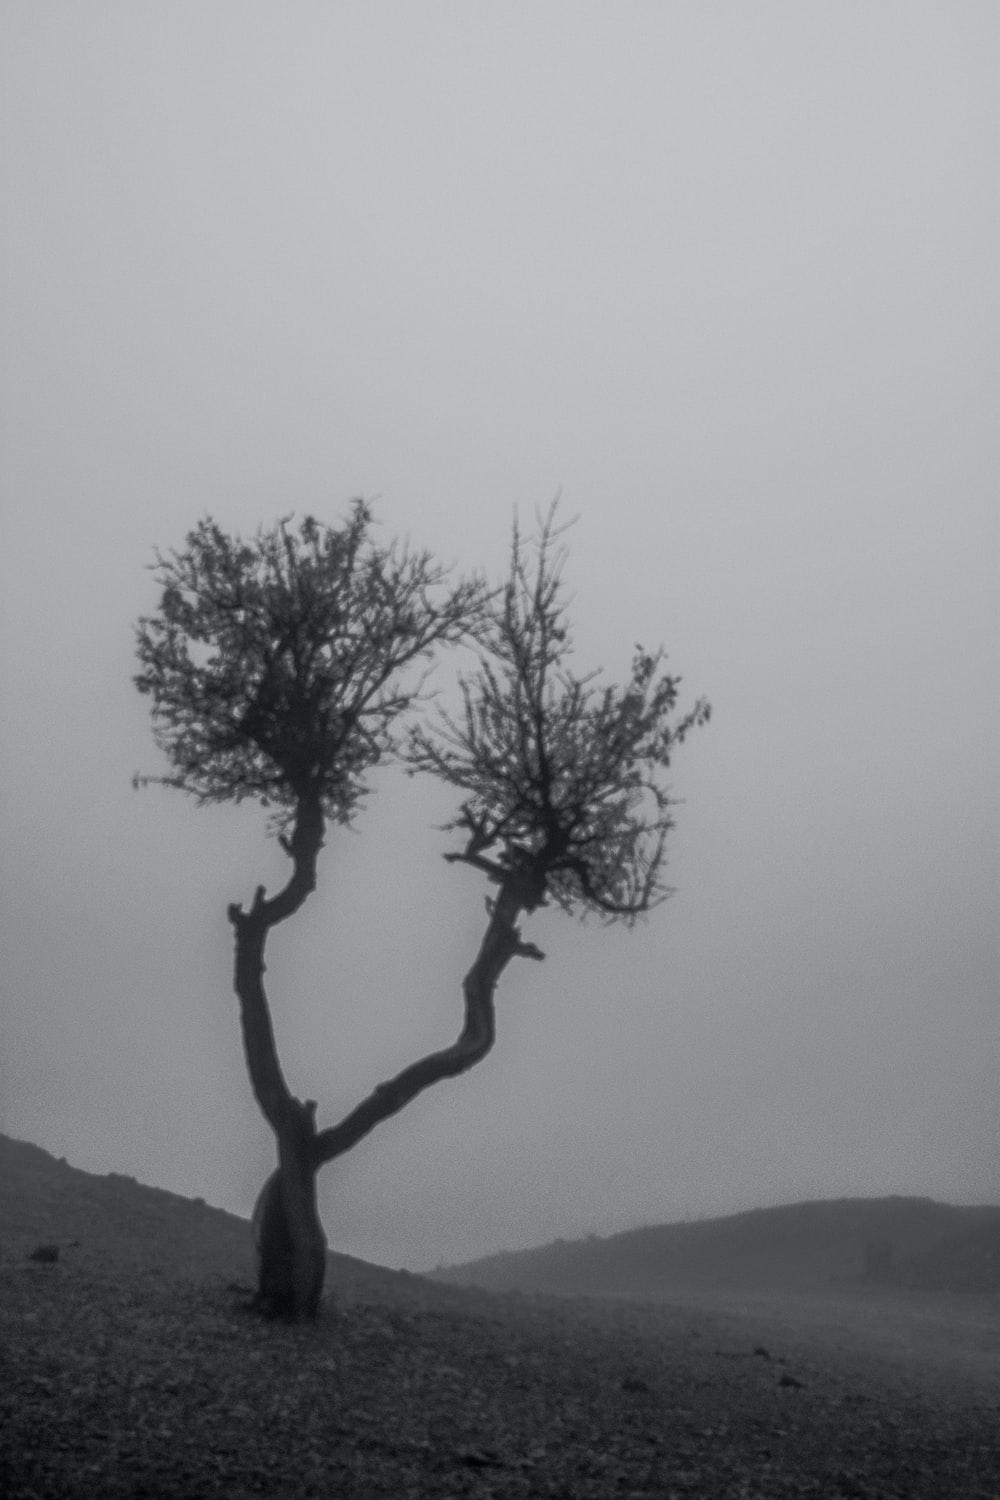 leafless tree on hill during daytime